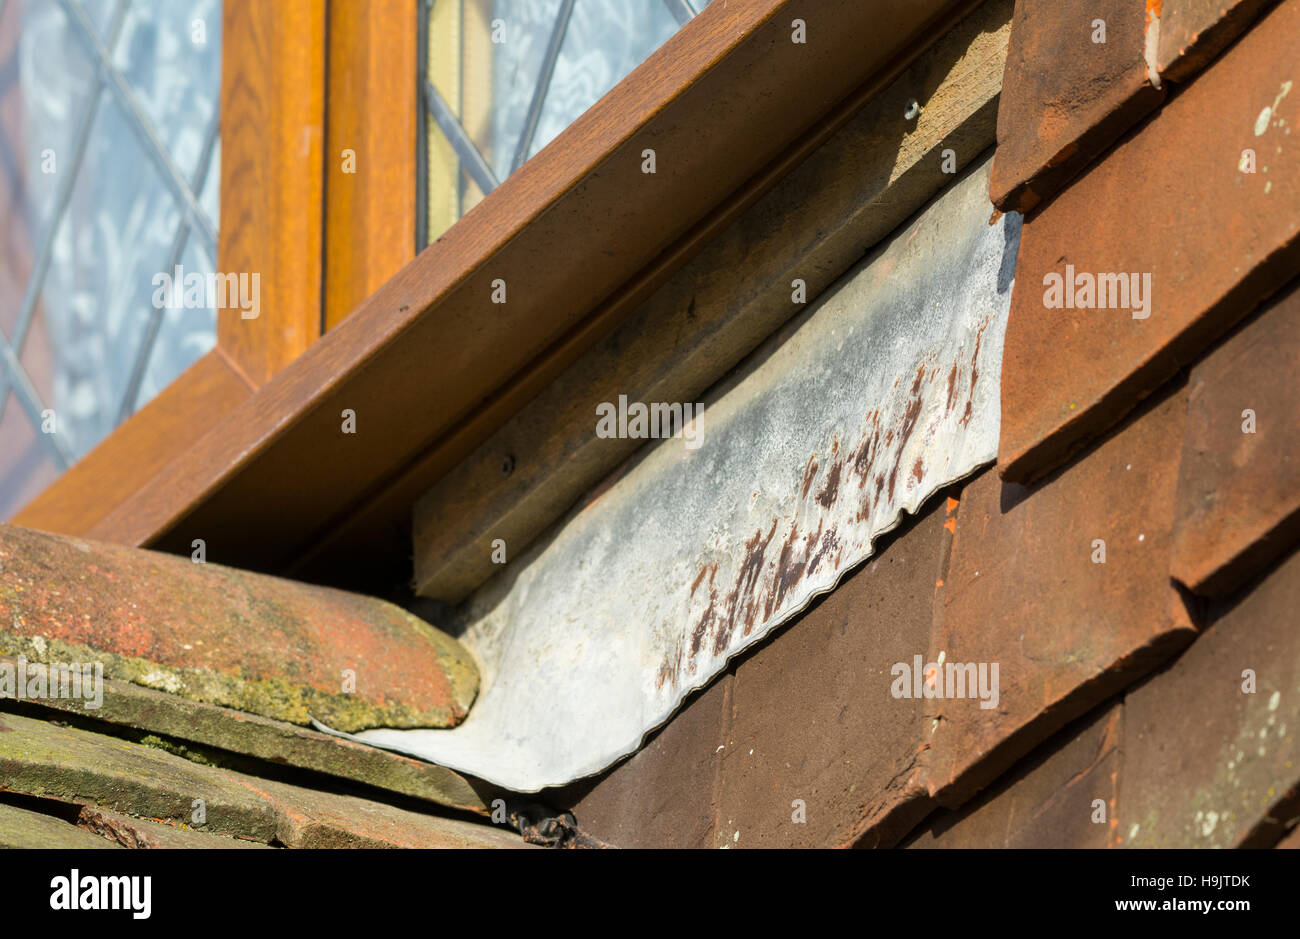 Lead flashing under a PVC window. - Stock Image